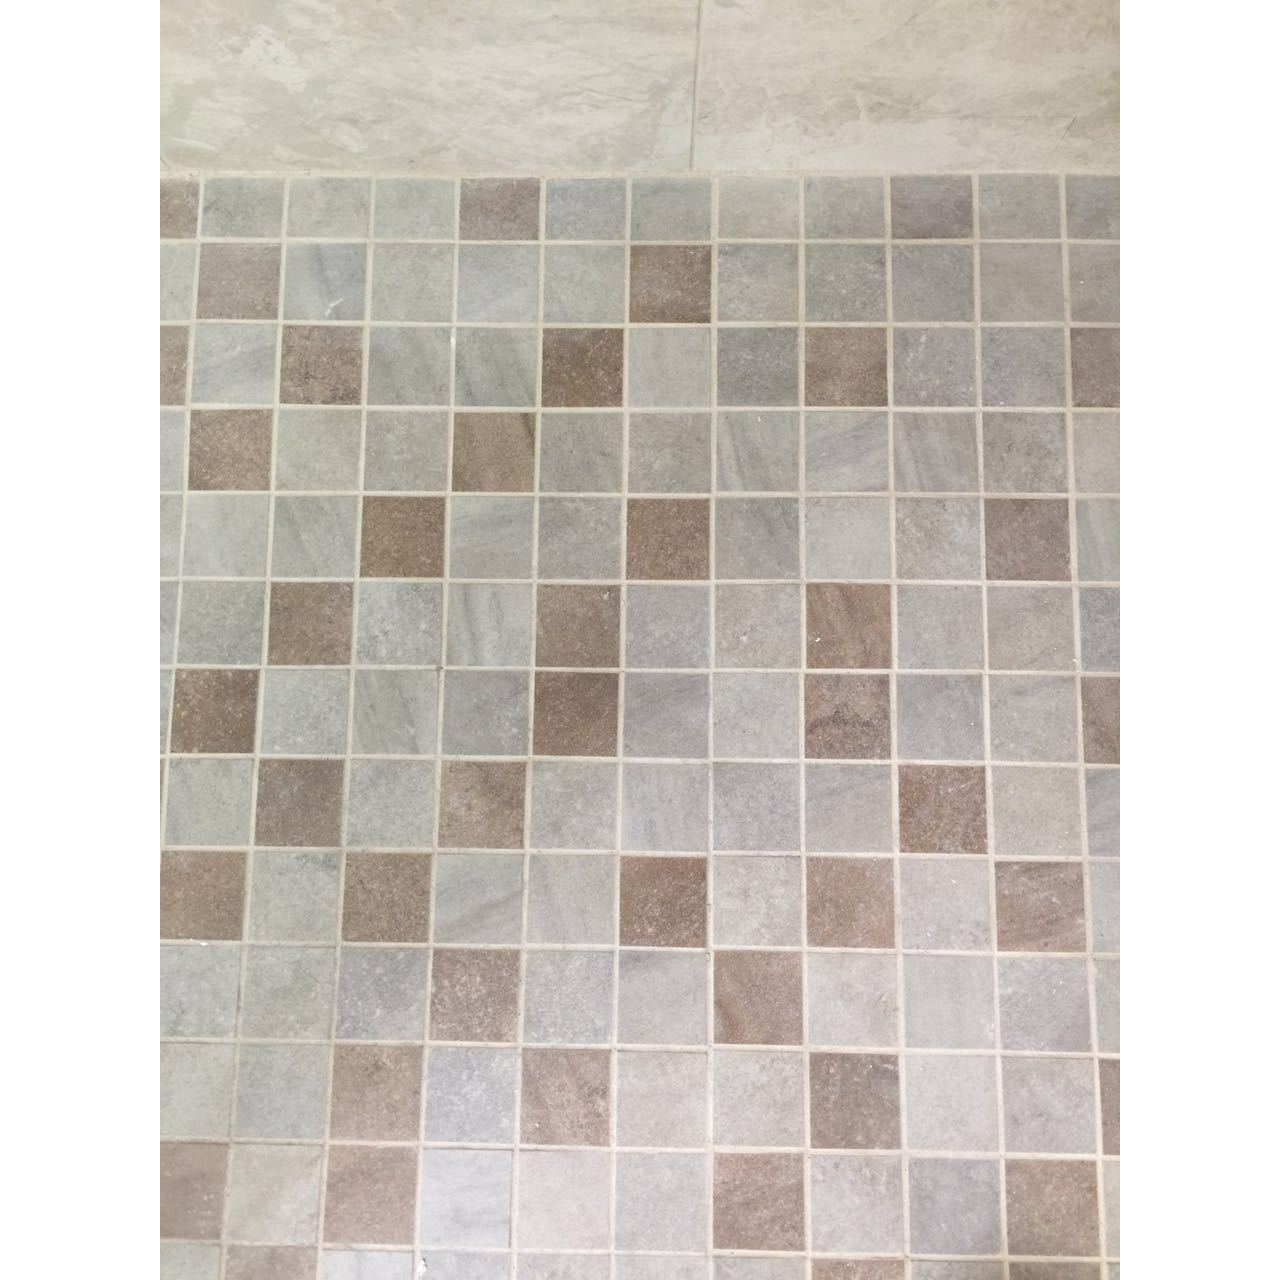 Glass Mosaic 12 X 12 Inch Square Pattern Tile For Kitchen Backsplash Bathroom Wall Swimming Pool Box Of 11 Overstock 13807980